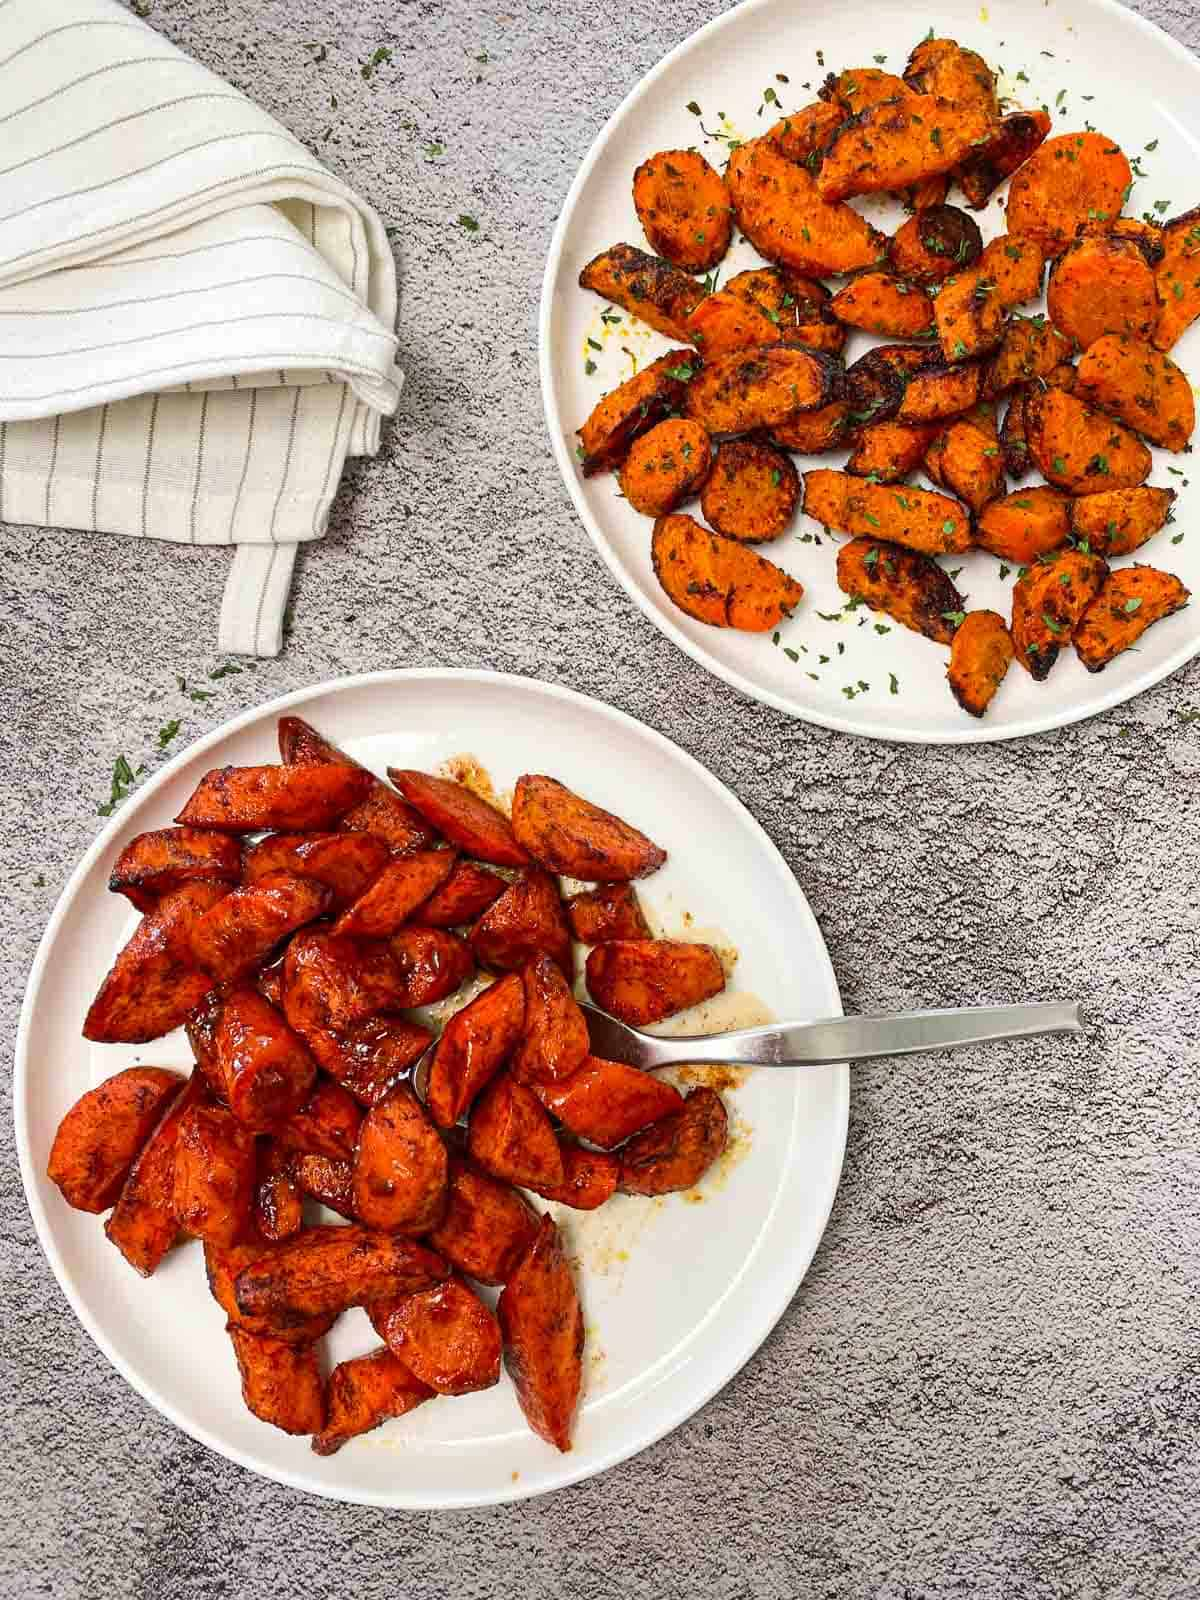 two plates with air fried carrots, one version is sweet and the other is spicy